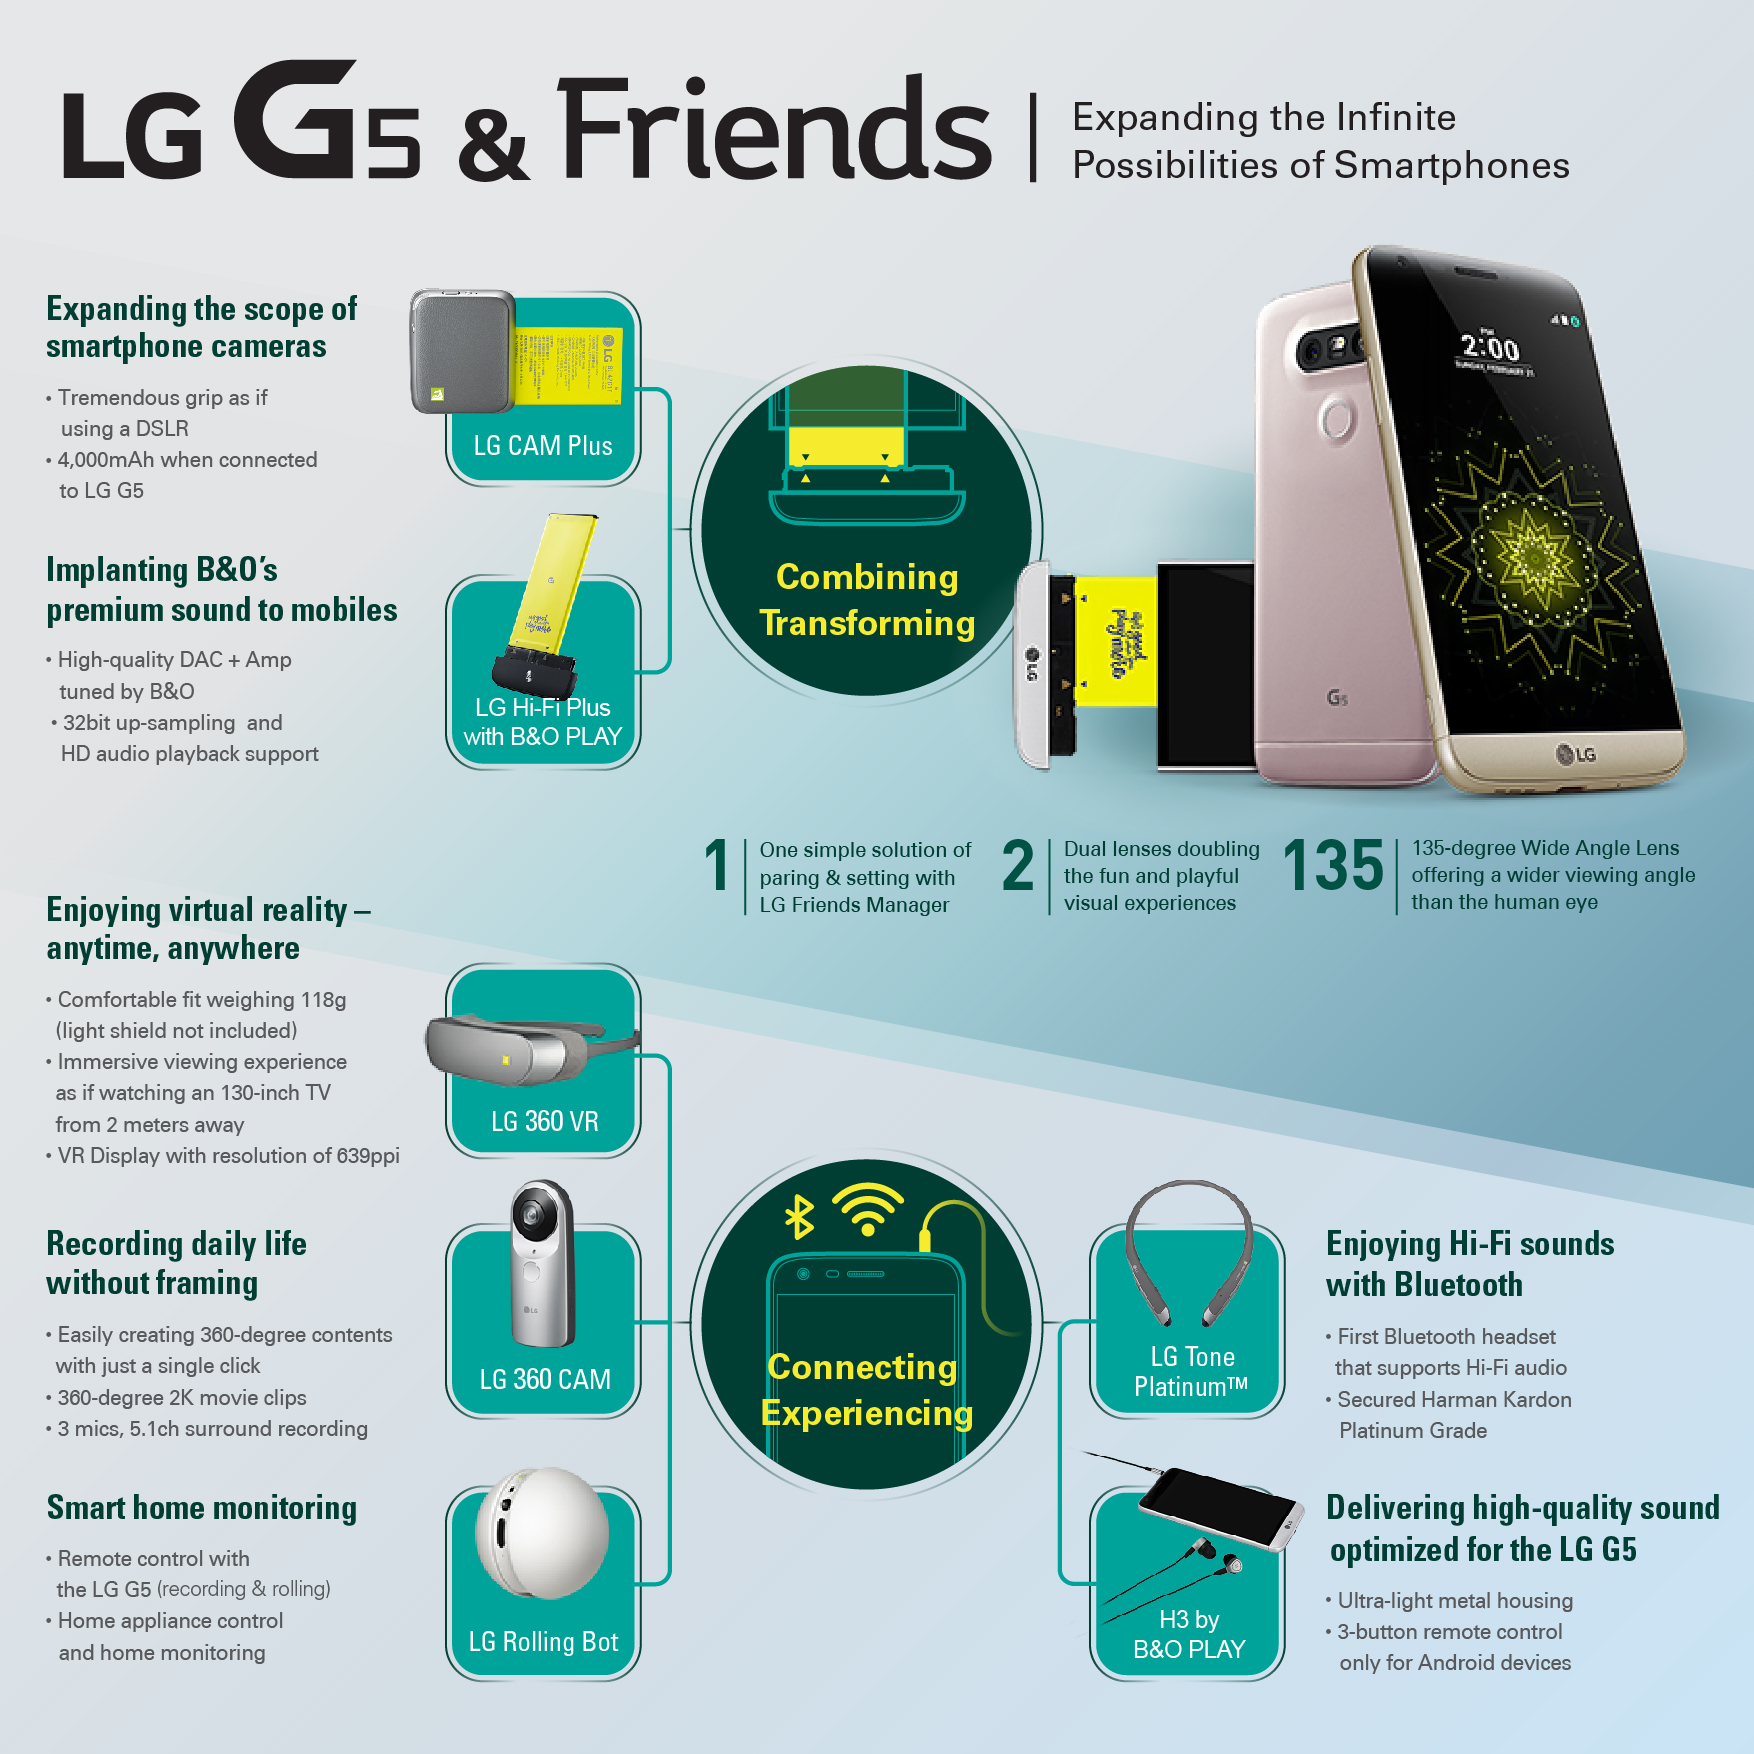 LG G5 Infographic - LG unveils the LG G5 with a Modular Design and Dual Cameras